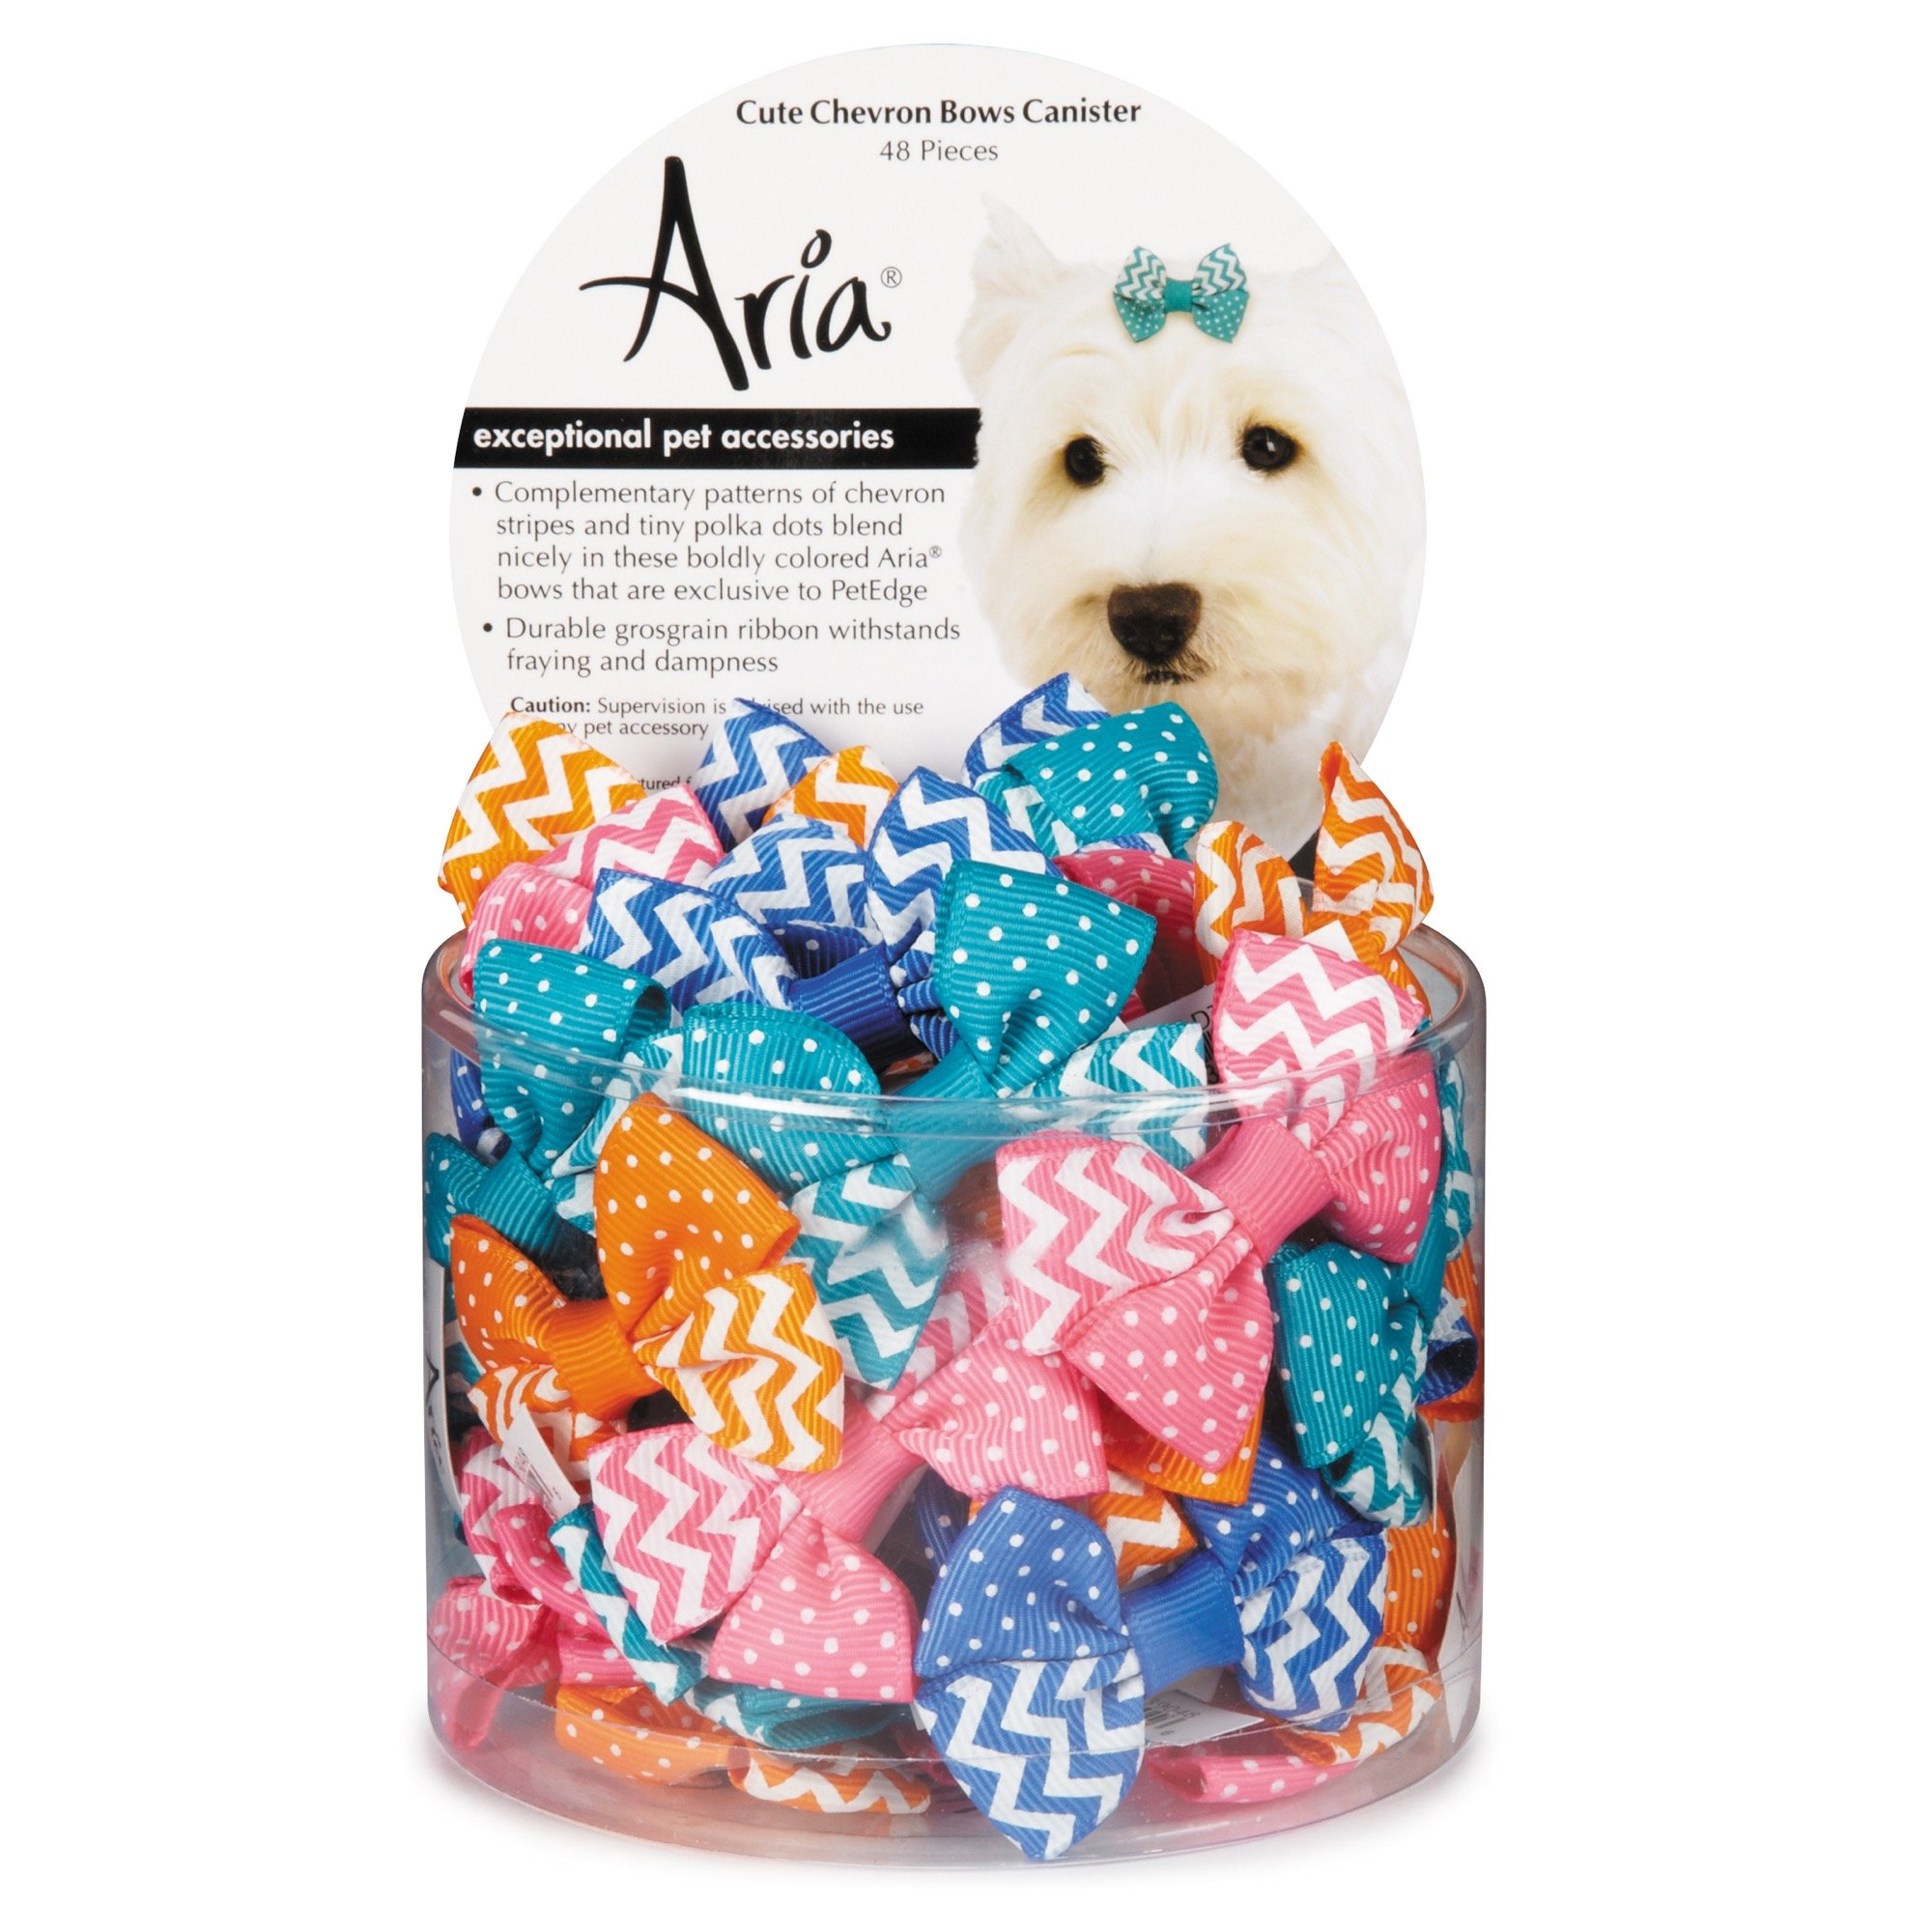 Aria 48 Piece Cute Chevron Dog Bow Canister